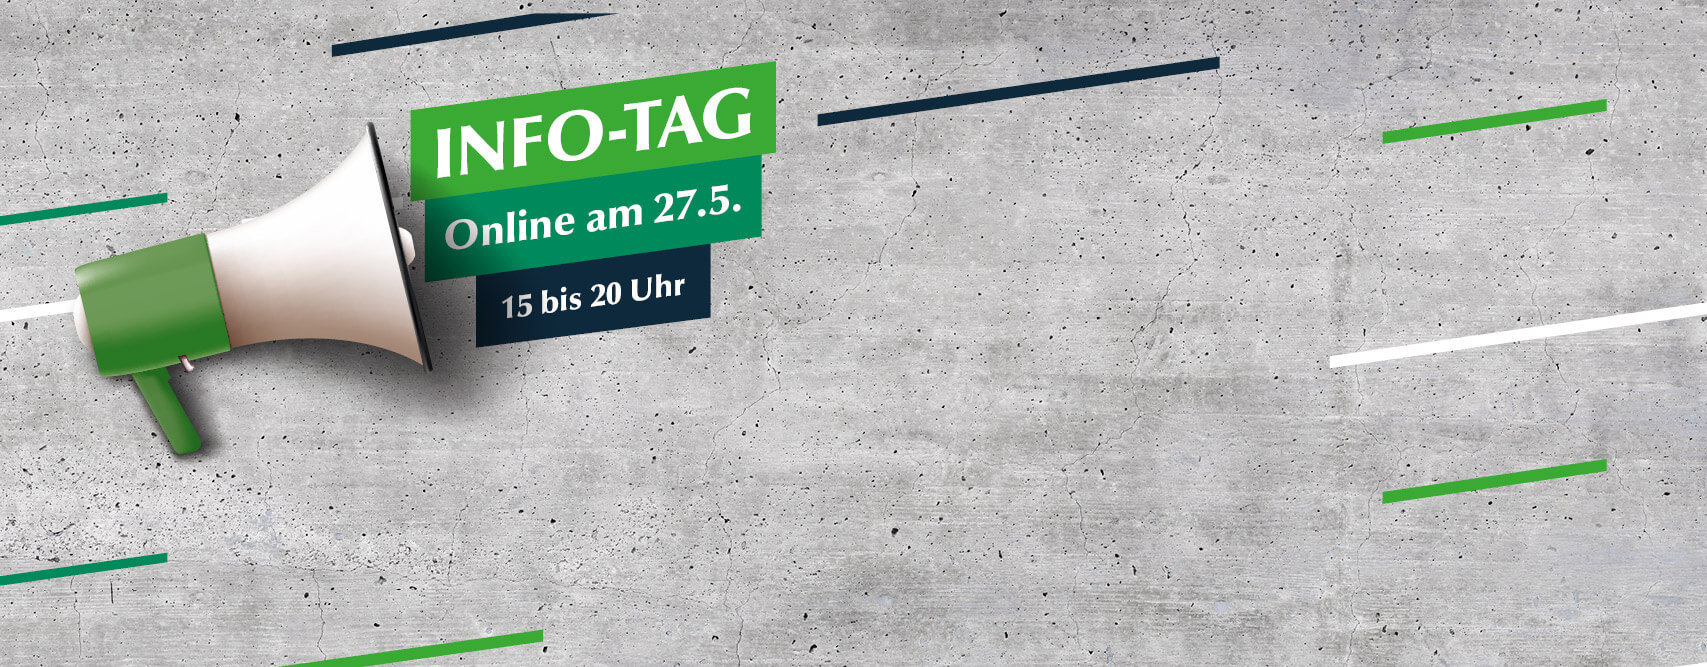 INFO-TAG online am 27.5.